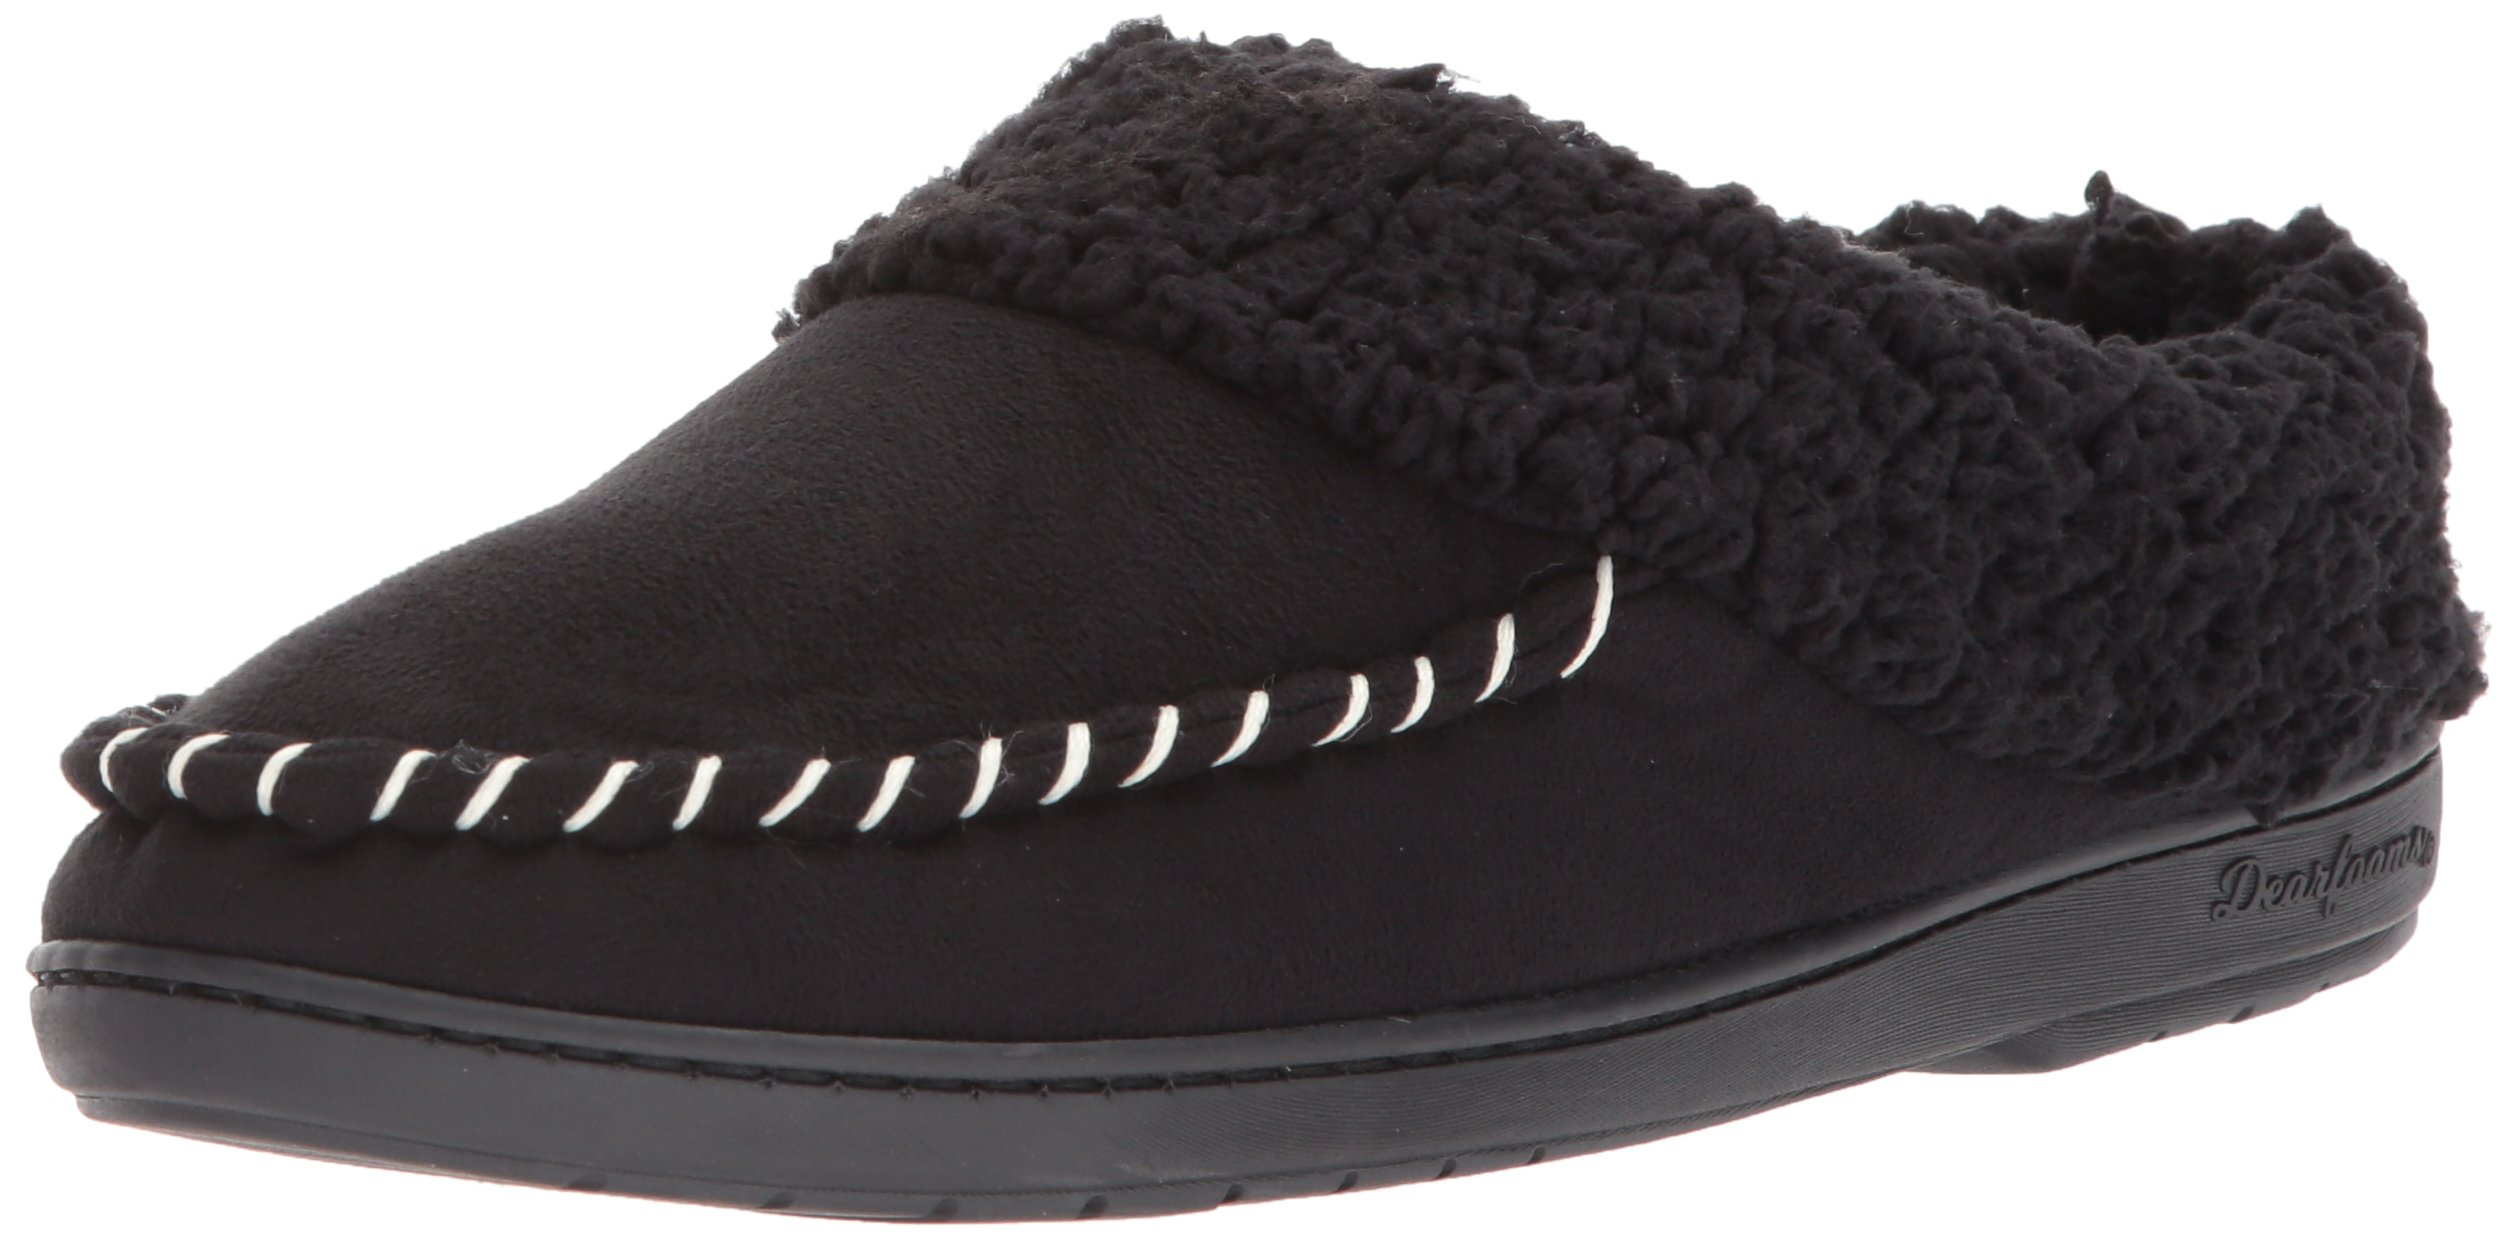 Dearfoams Women's MFS Clog with Whipstitch, Black, XL Medium US